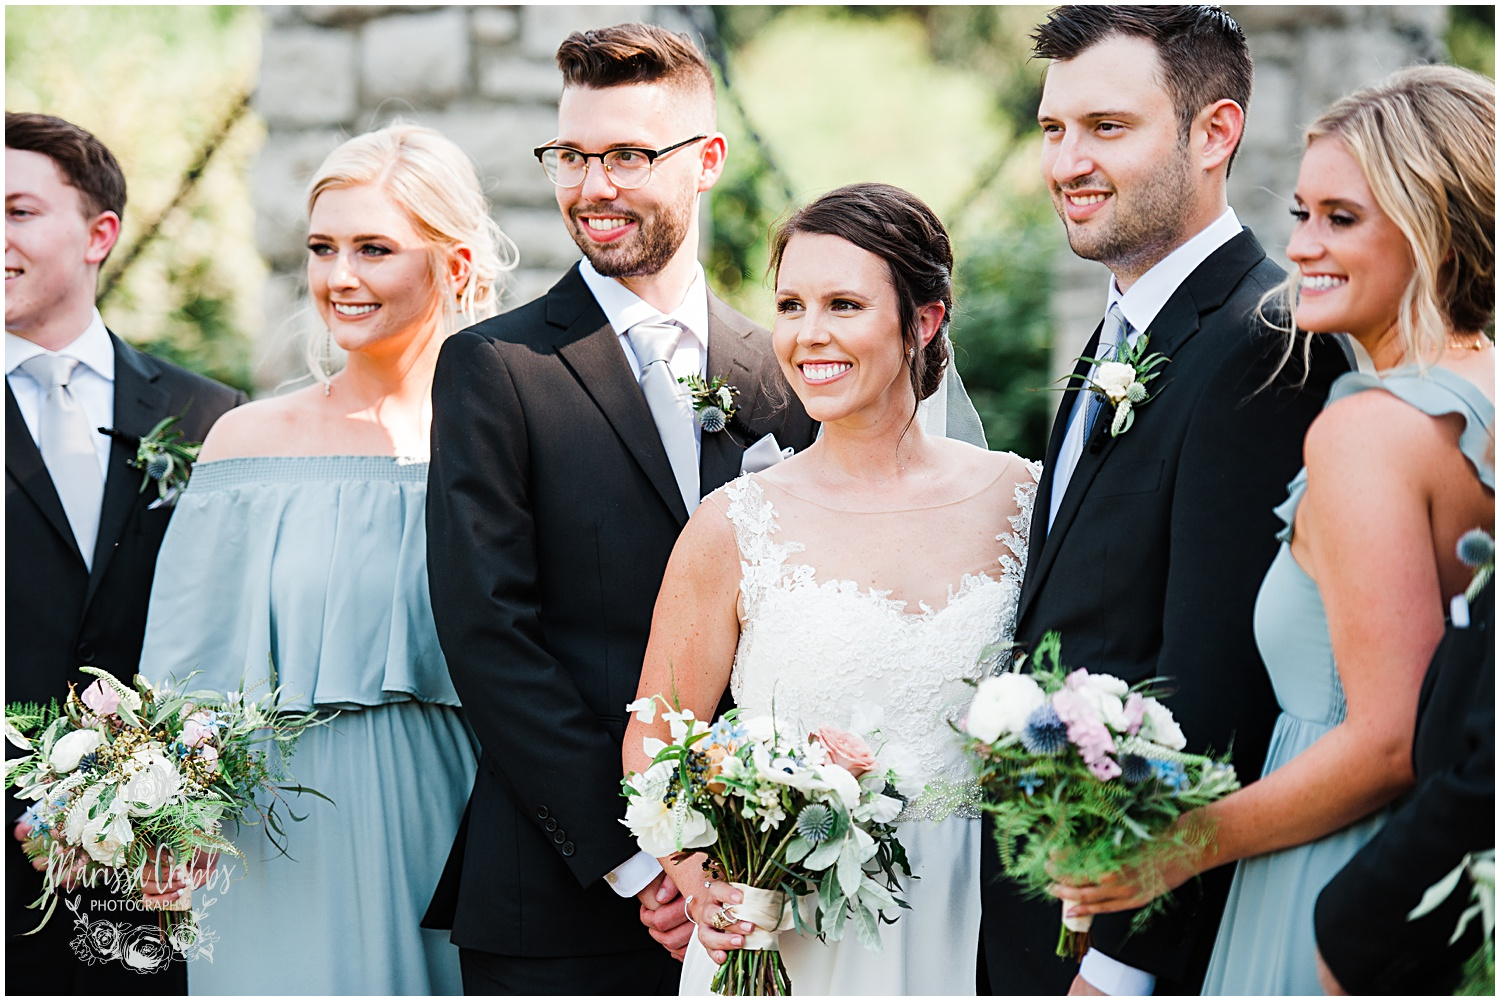 KELLY & MITCH MARRIED BLOG | MARISSA CRIBBS PHOTOGRAPHY | THE EVERLY EVENT SPACE_8860.jpg